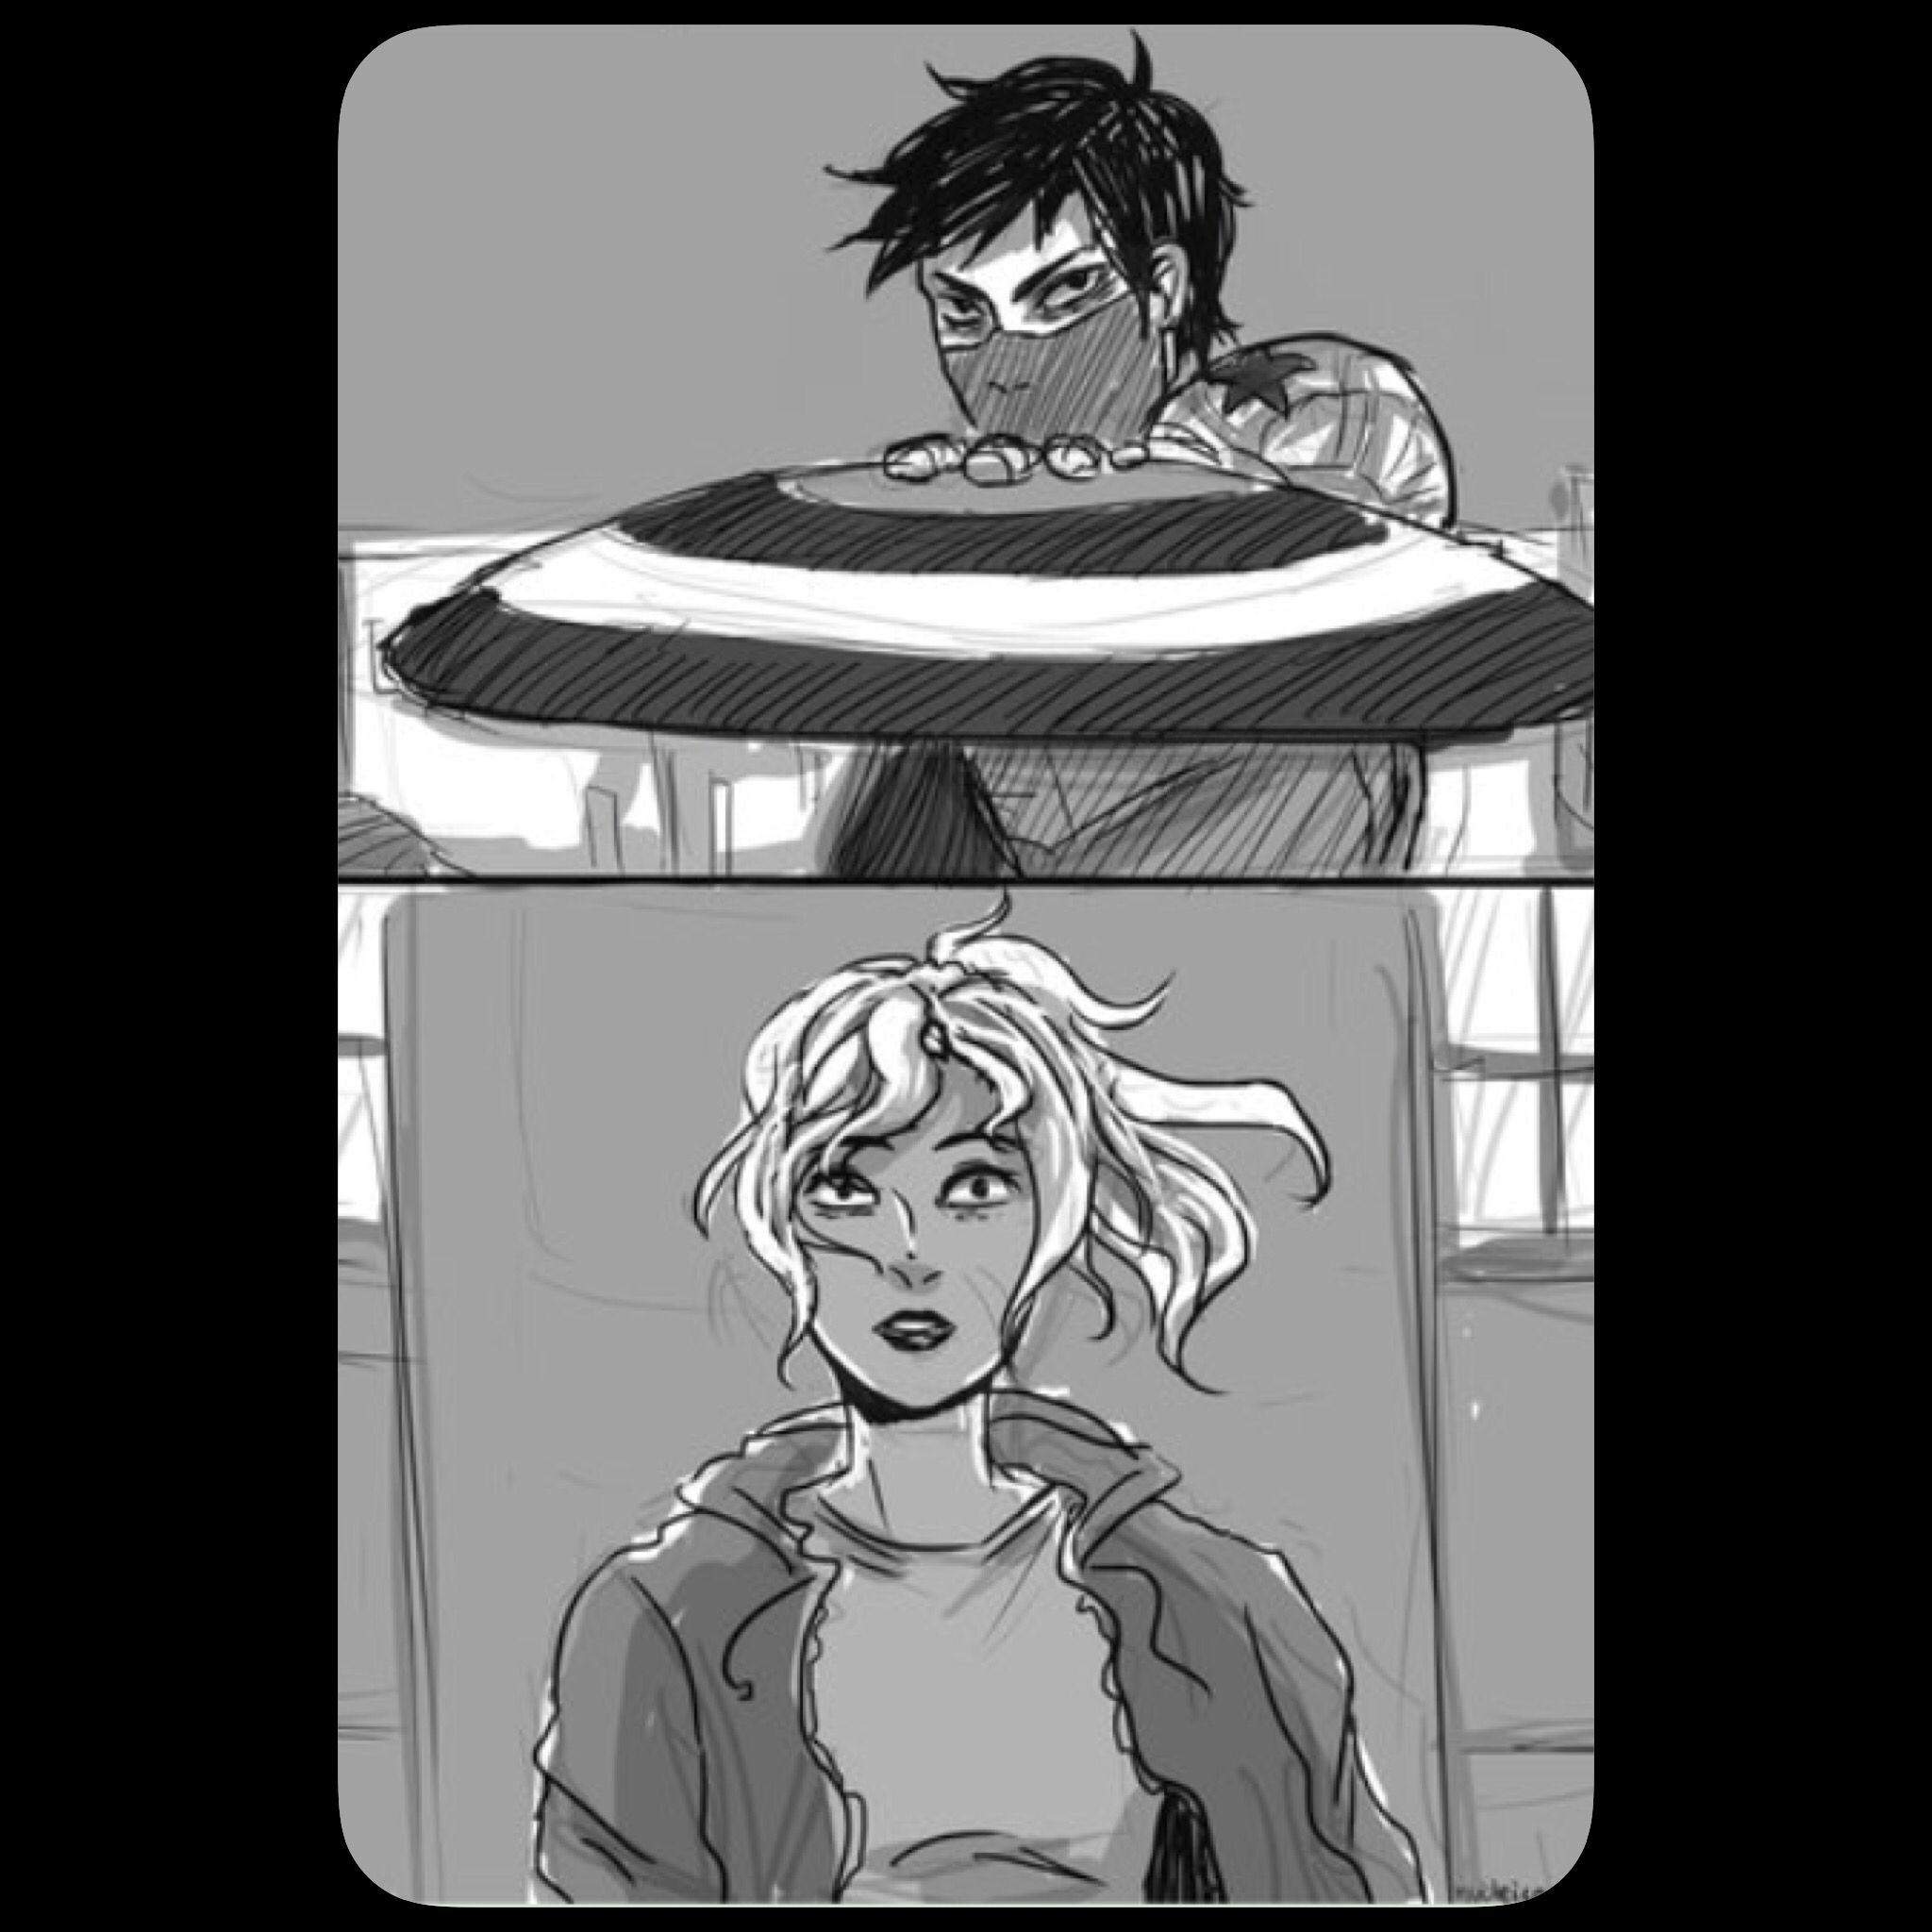 20+ Percabeth In Bed Fanfic Pictures and Ideas on Meta Networks